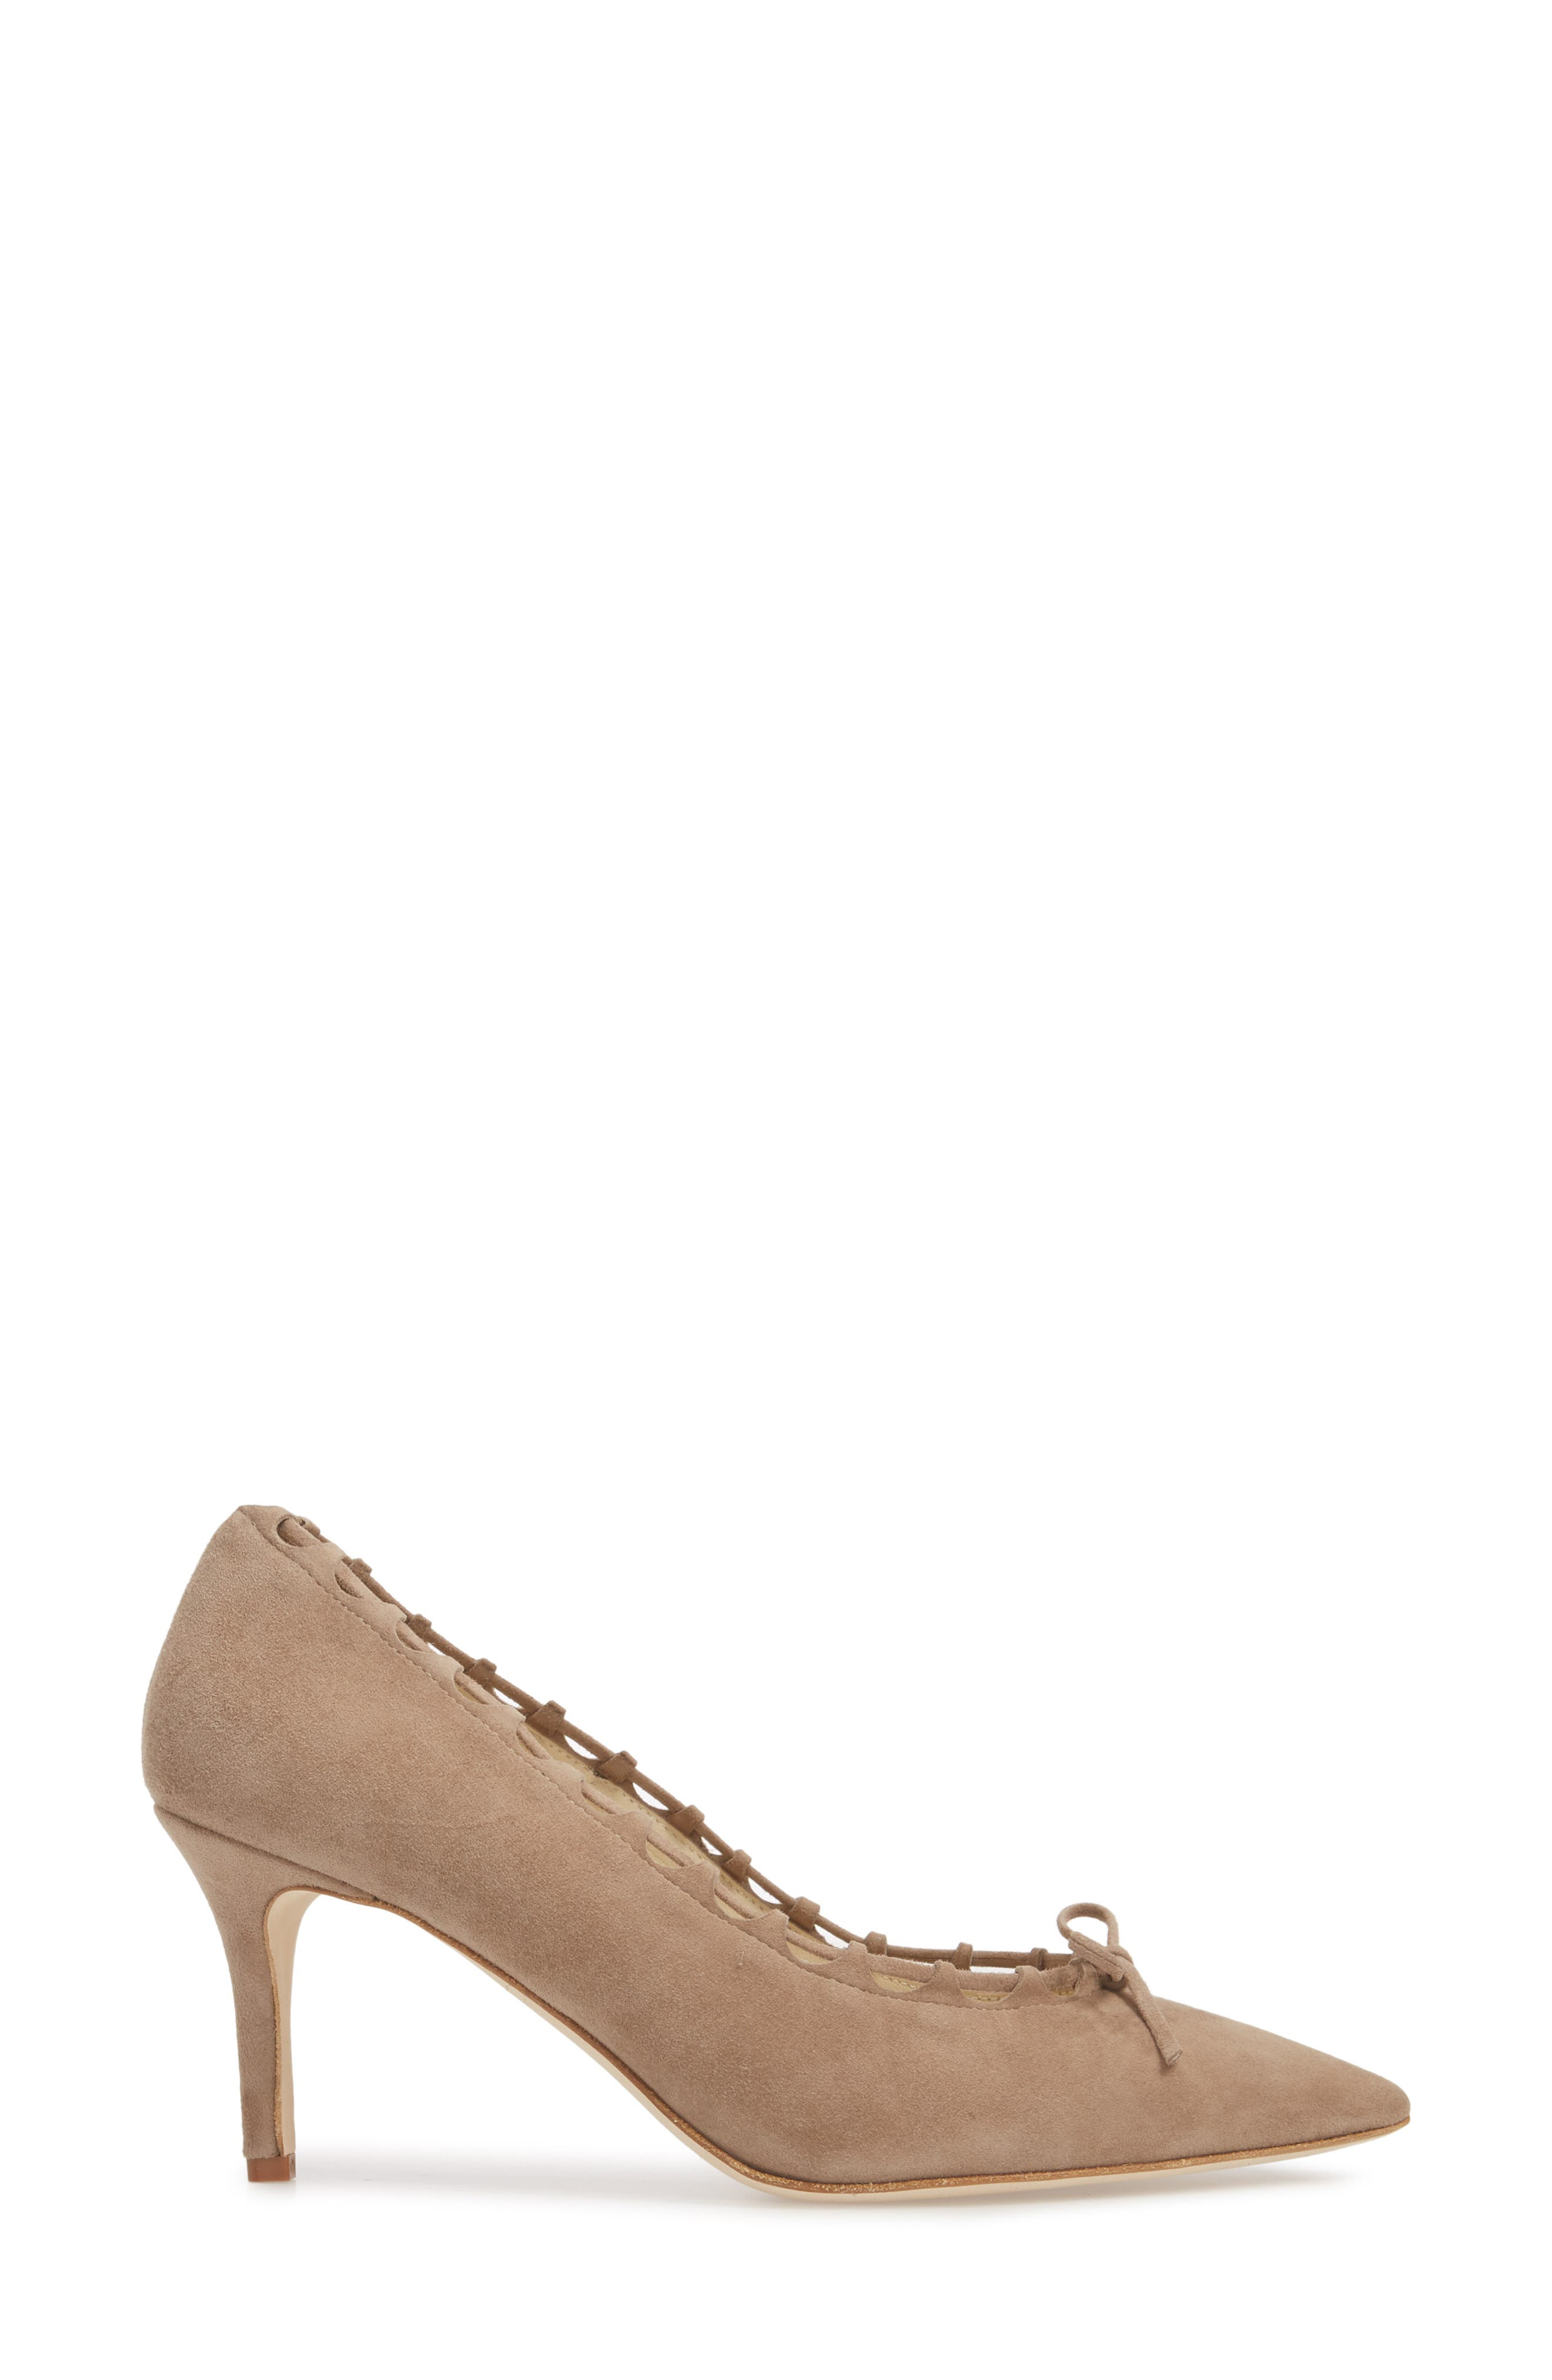 Butter Eris Pointy Toe Pump,                             Alternate thumbnail 6, color,                             Taupe Suede